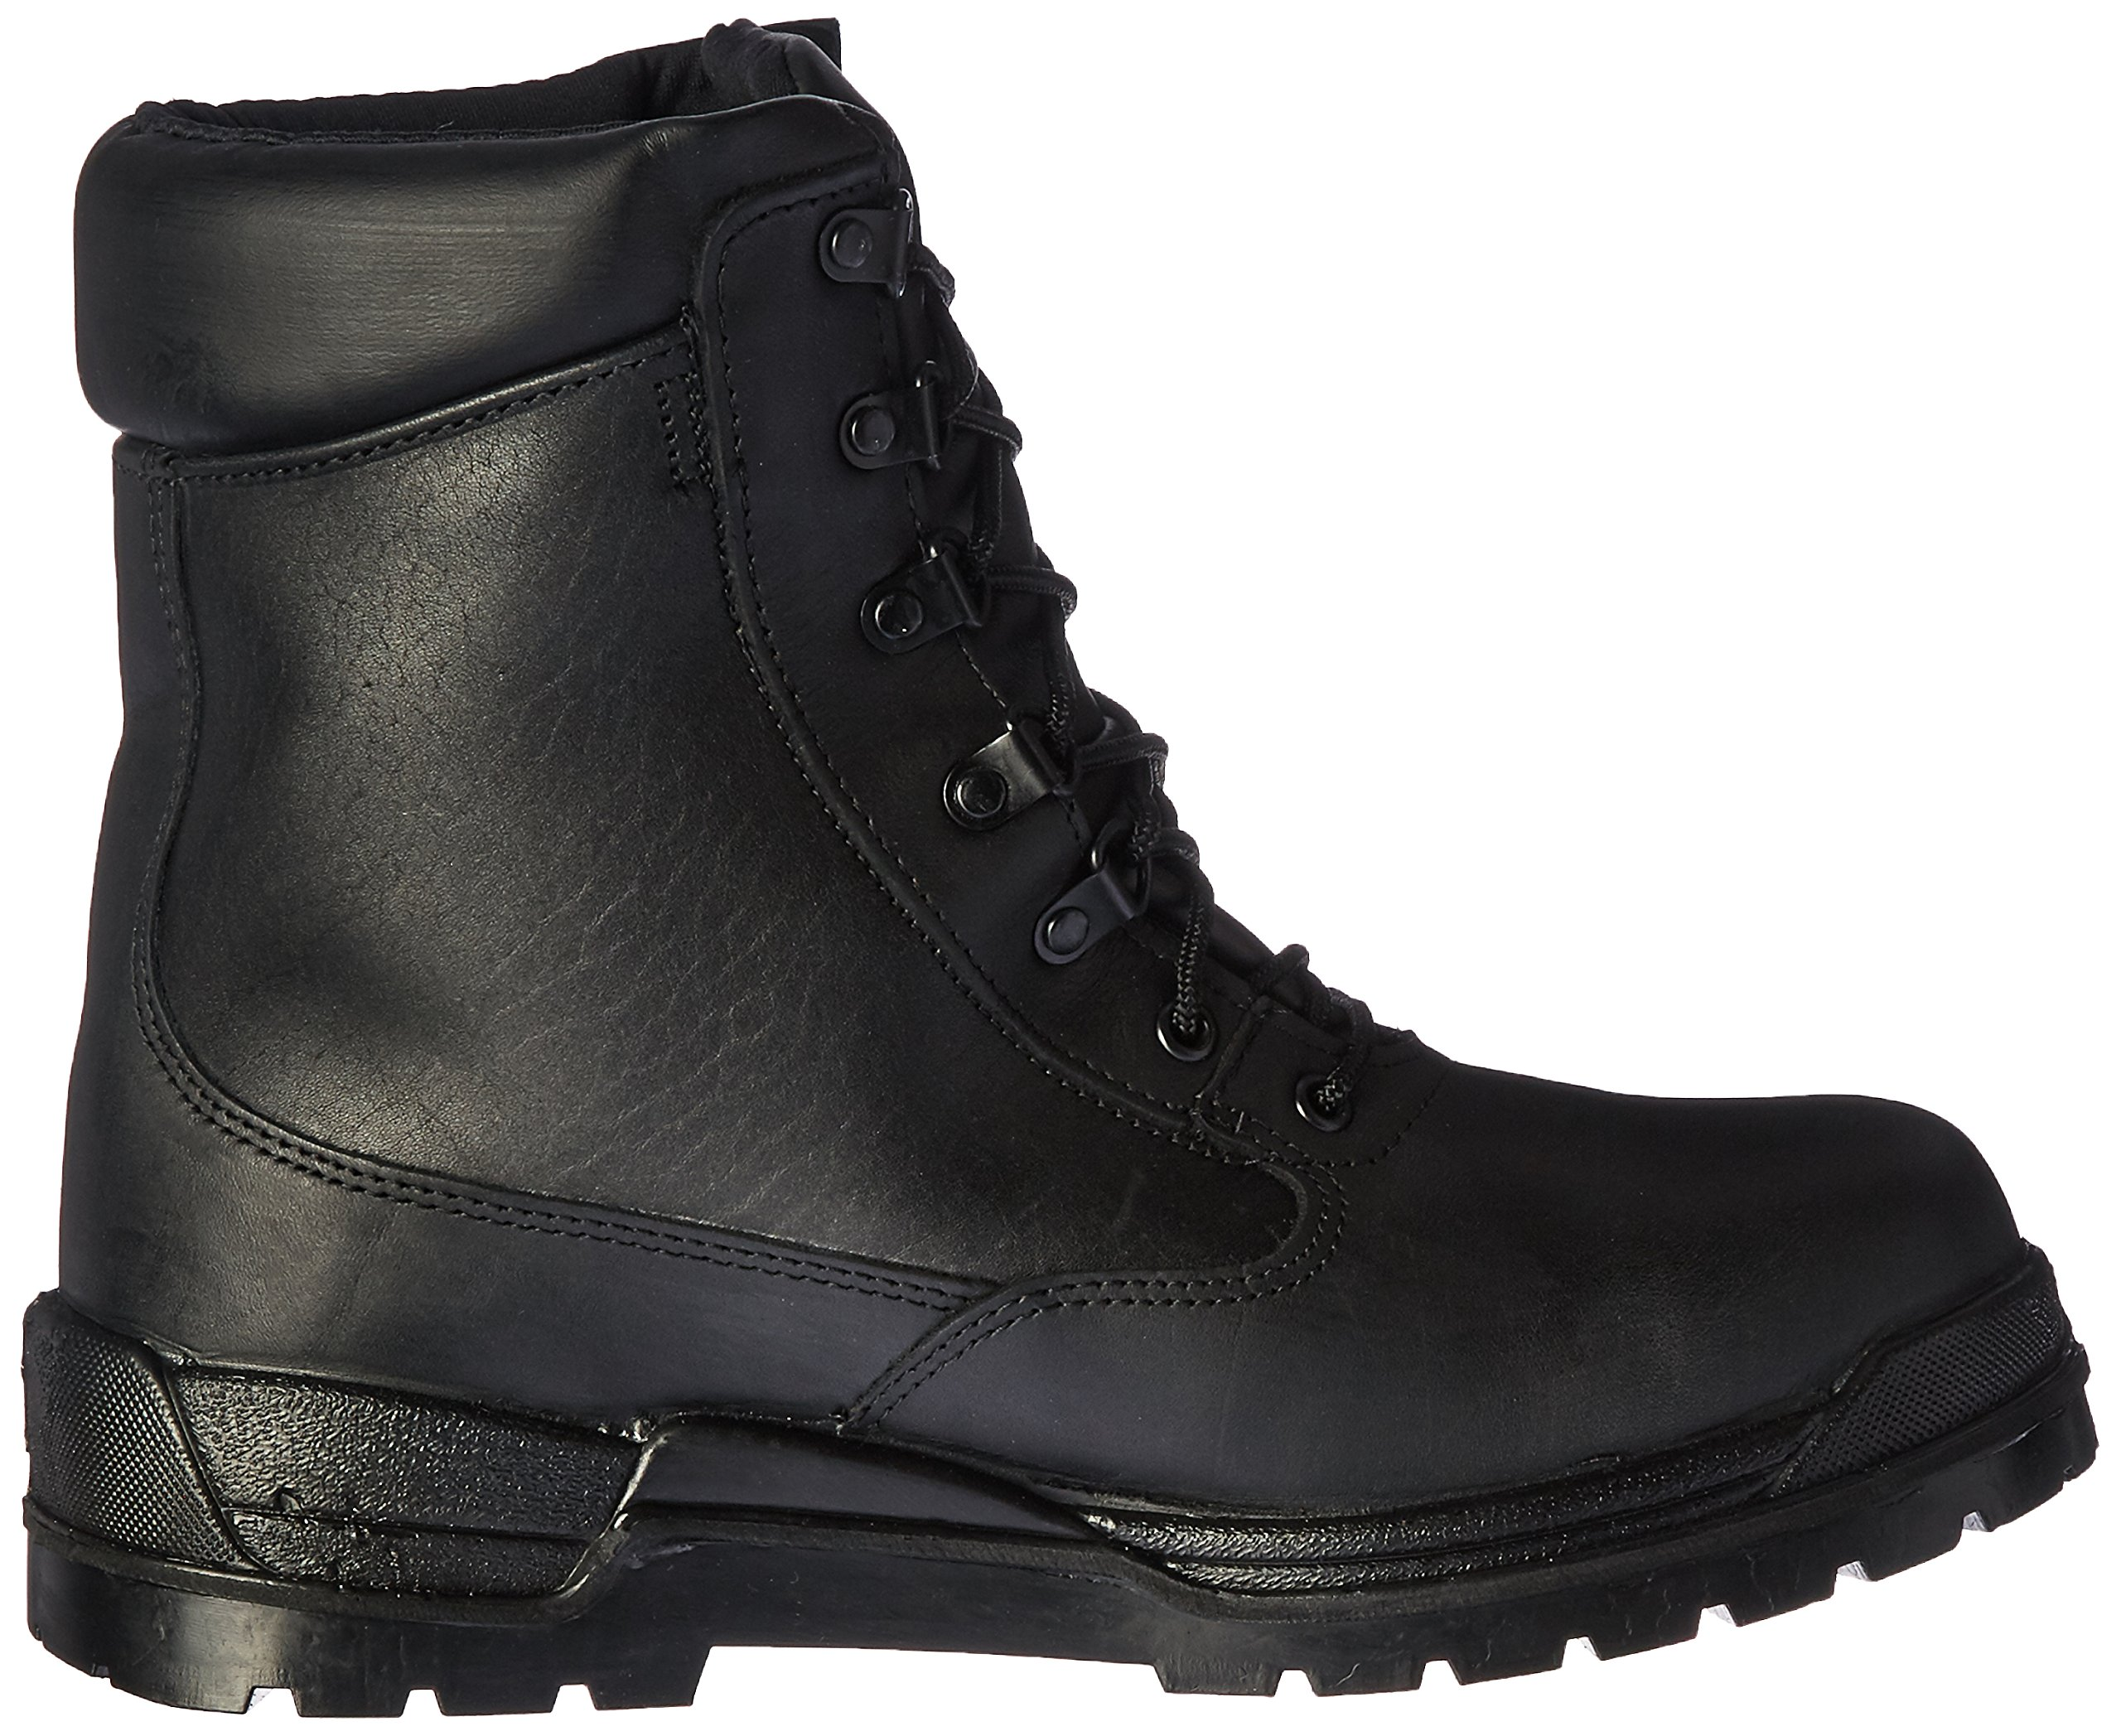 Rocky Men's 6 Inch Postal 8132-1 Slip Resistant Work Boot,Black,12 XW US by Rocky (Image #7)